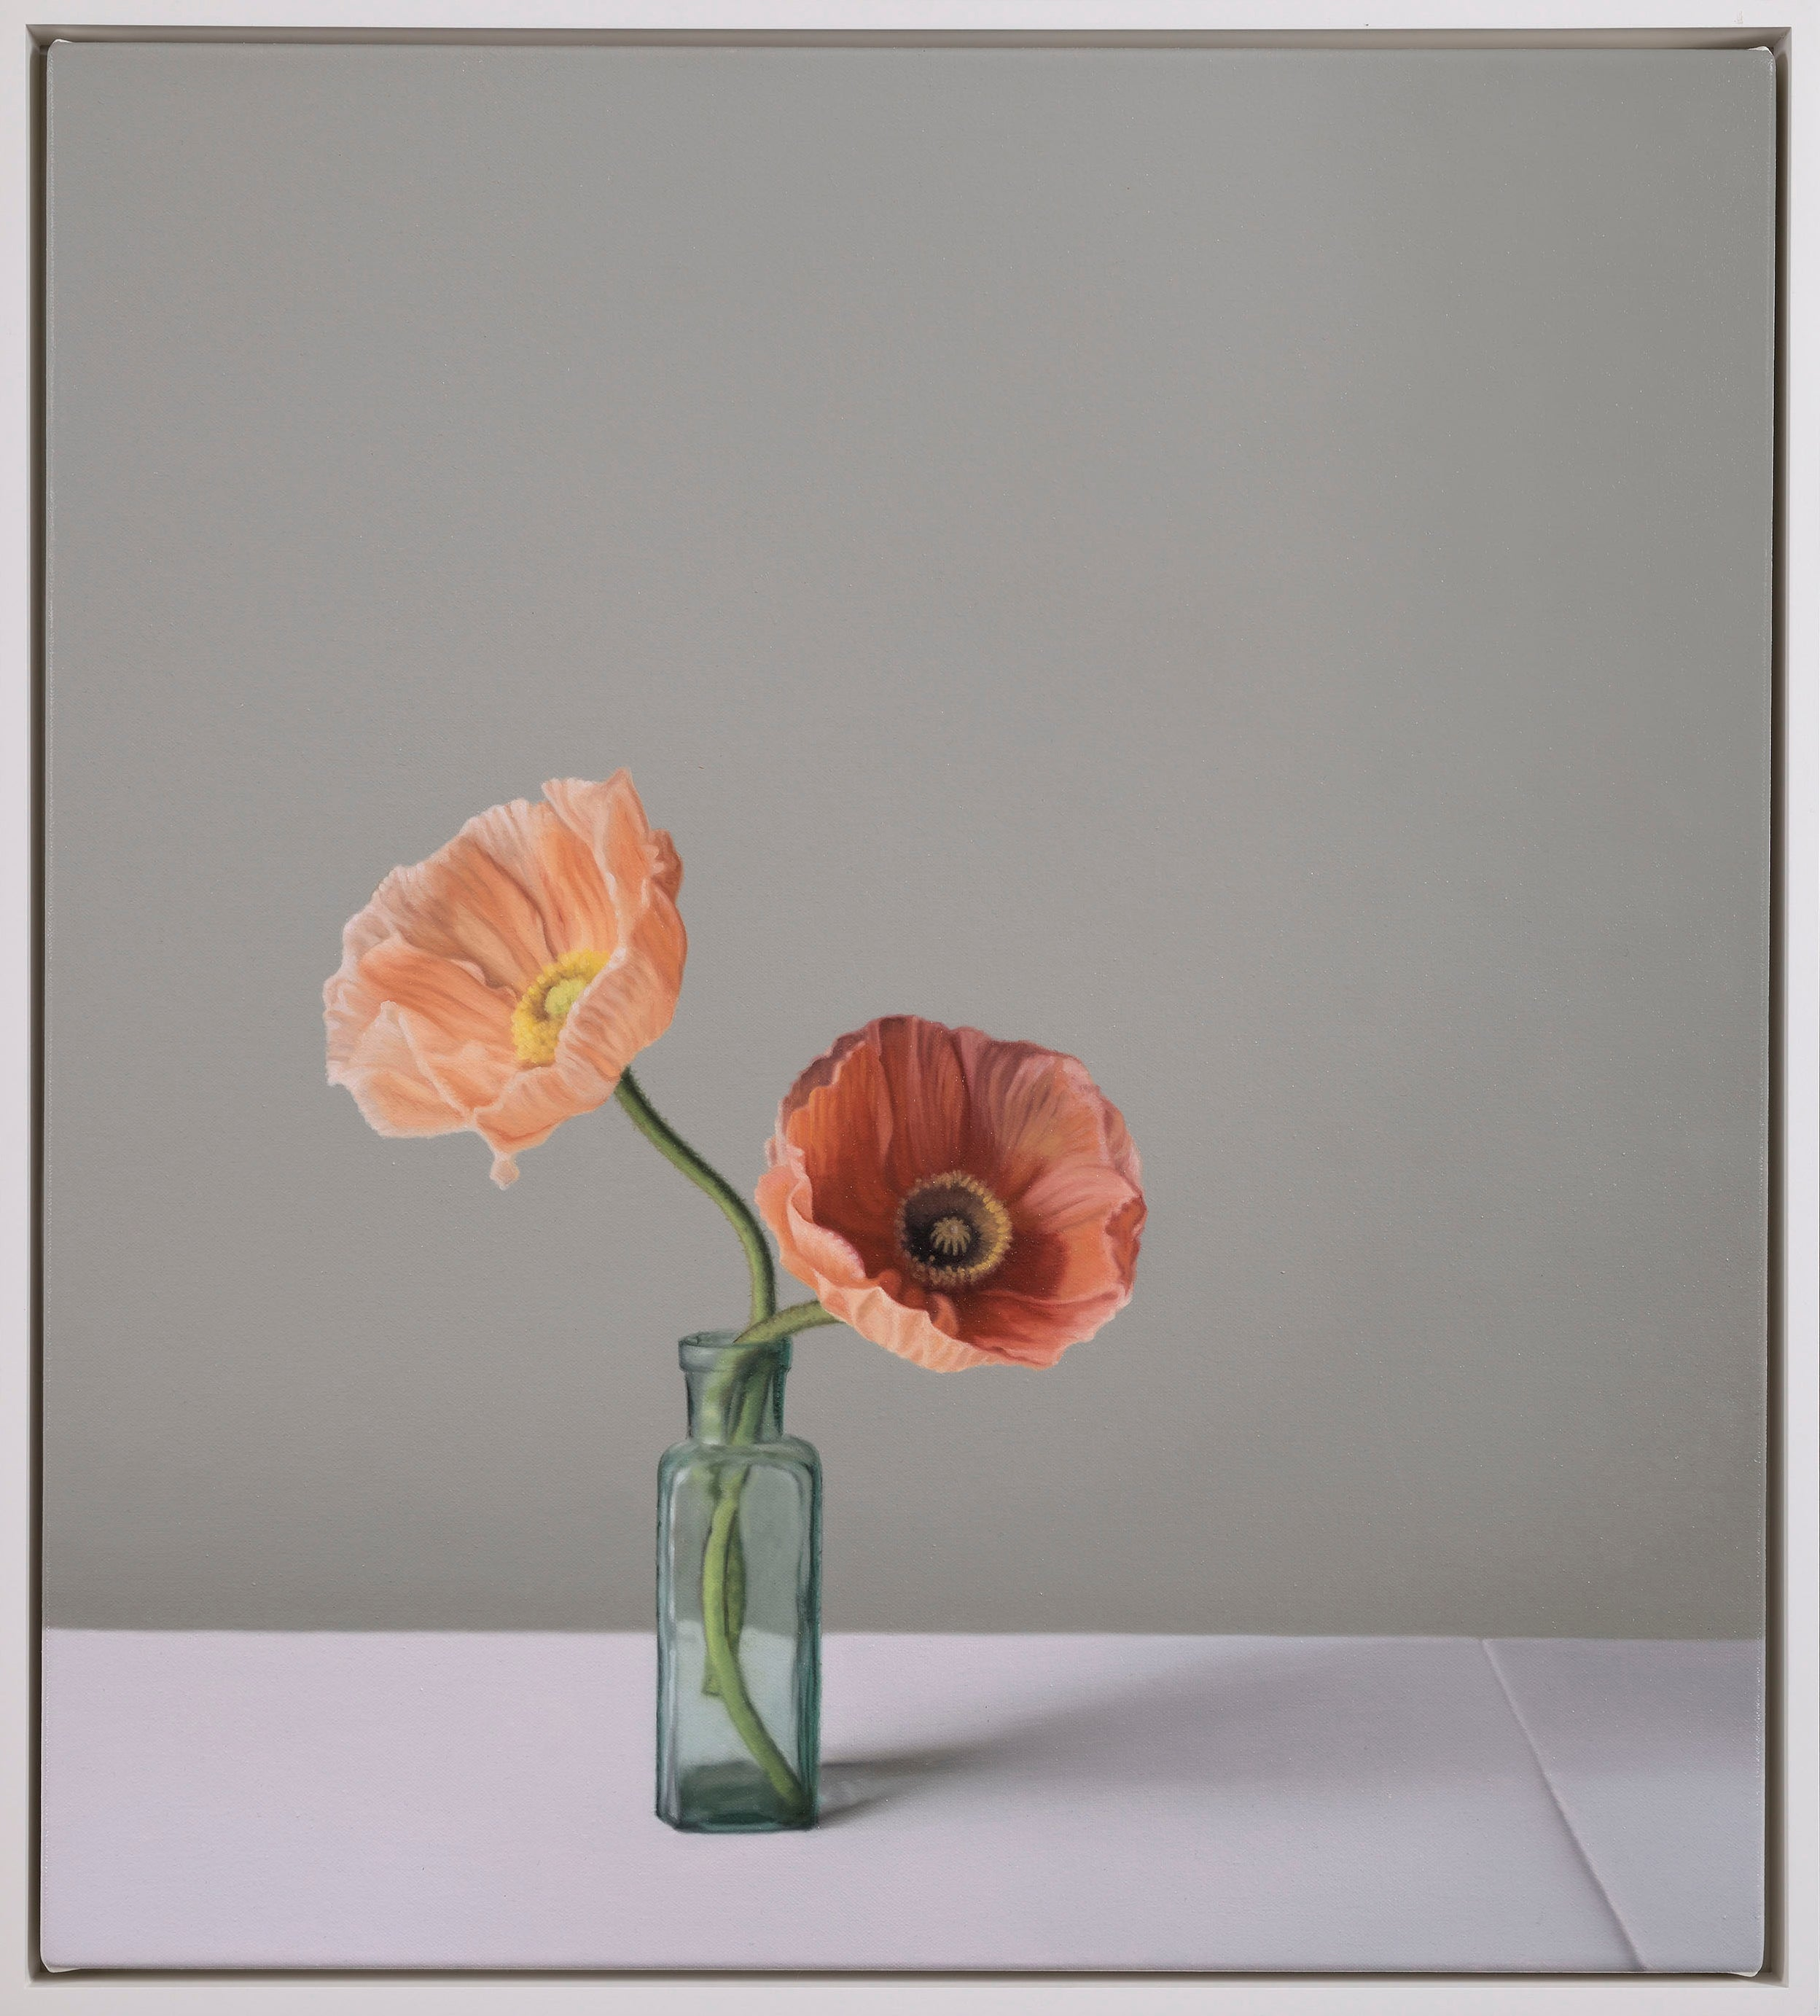 Still Life with Glass Bottles and Icelandic Poppies